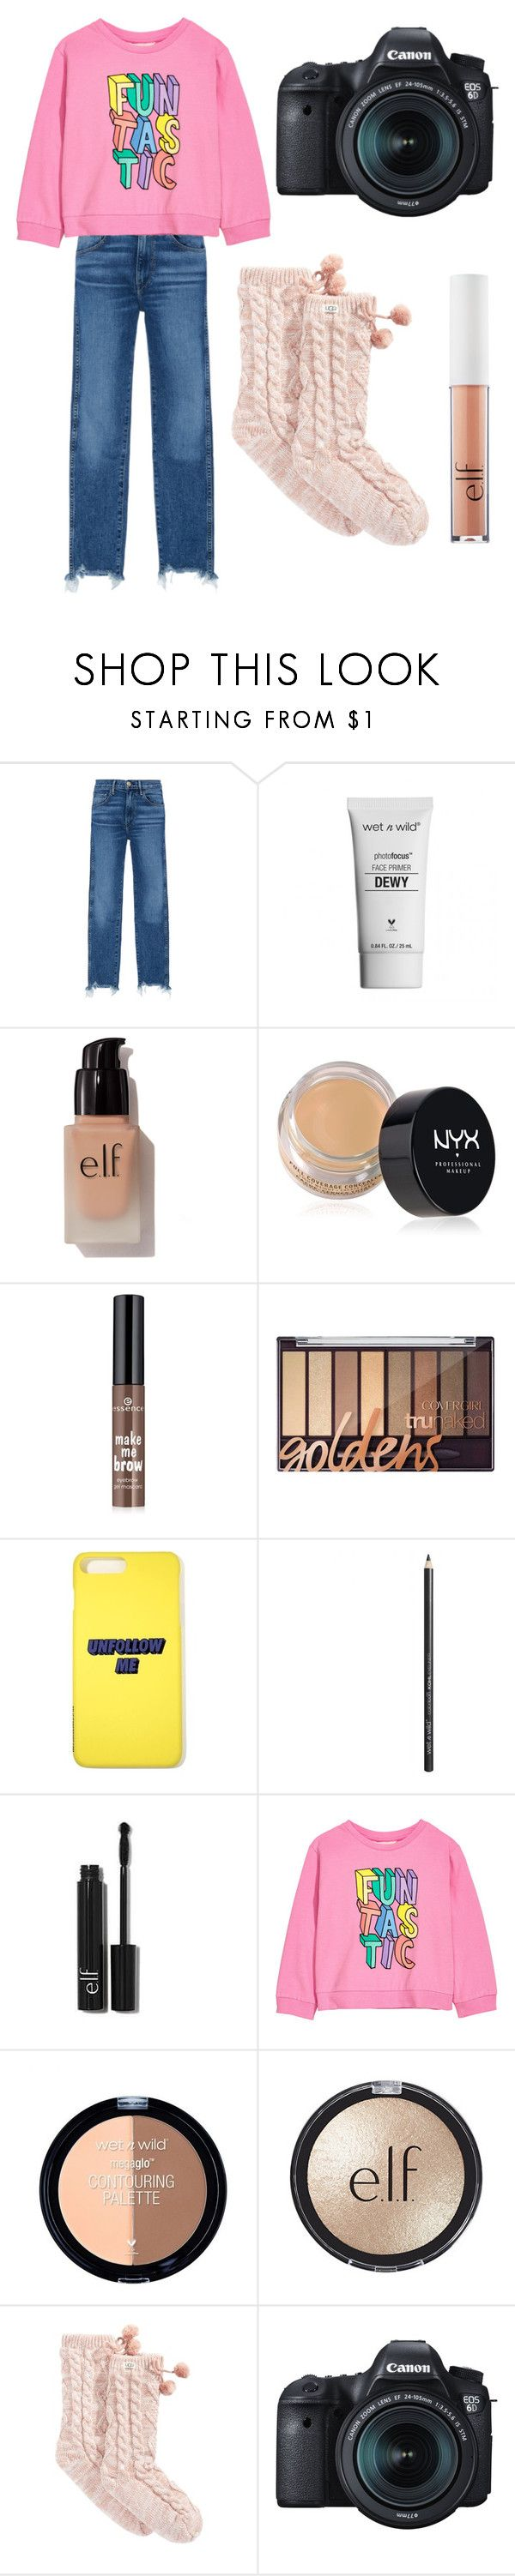 """""""'$30 Five Minute Makeup Challenge with Niki and Gabi' Video"""" by princess-sugar ❤ liked on Polyvore featuring 3x1, e.l.f., NYX, Forever 21, UGG and Eos"""